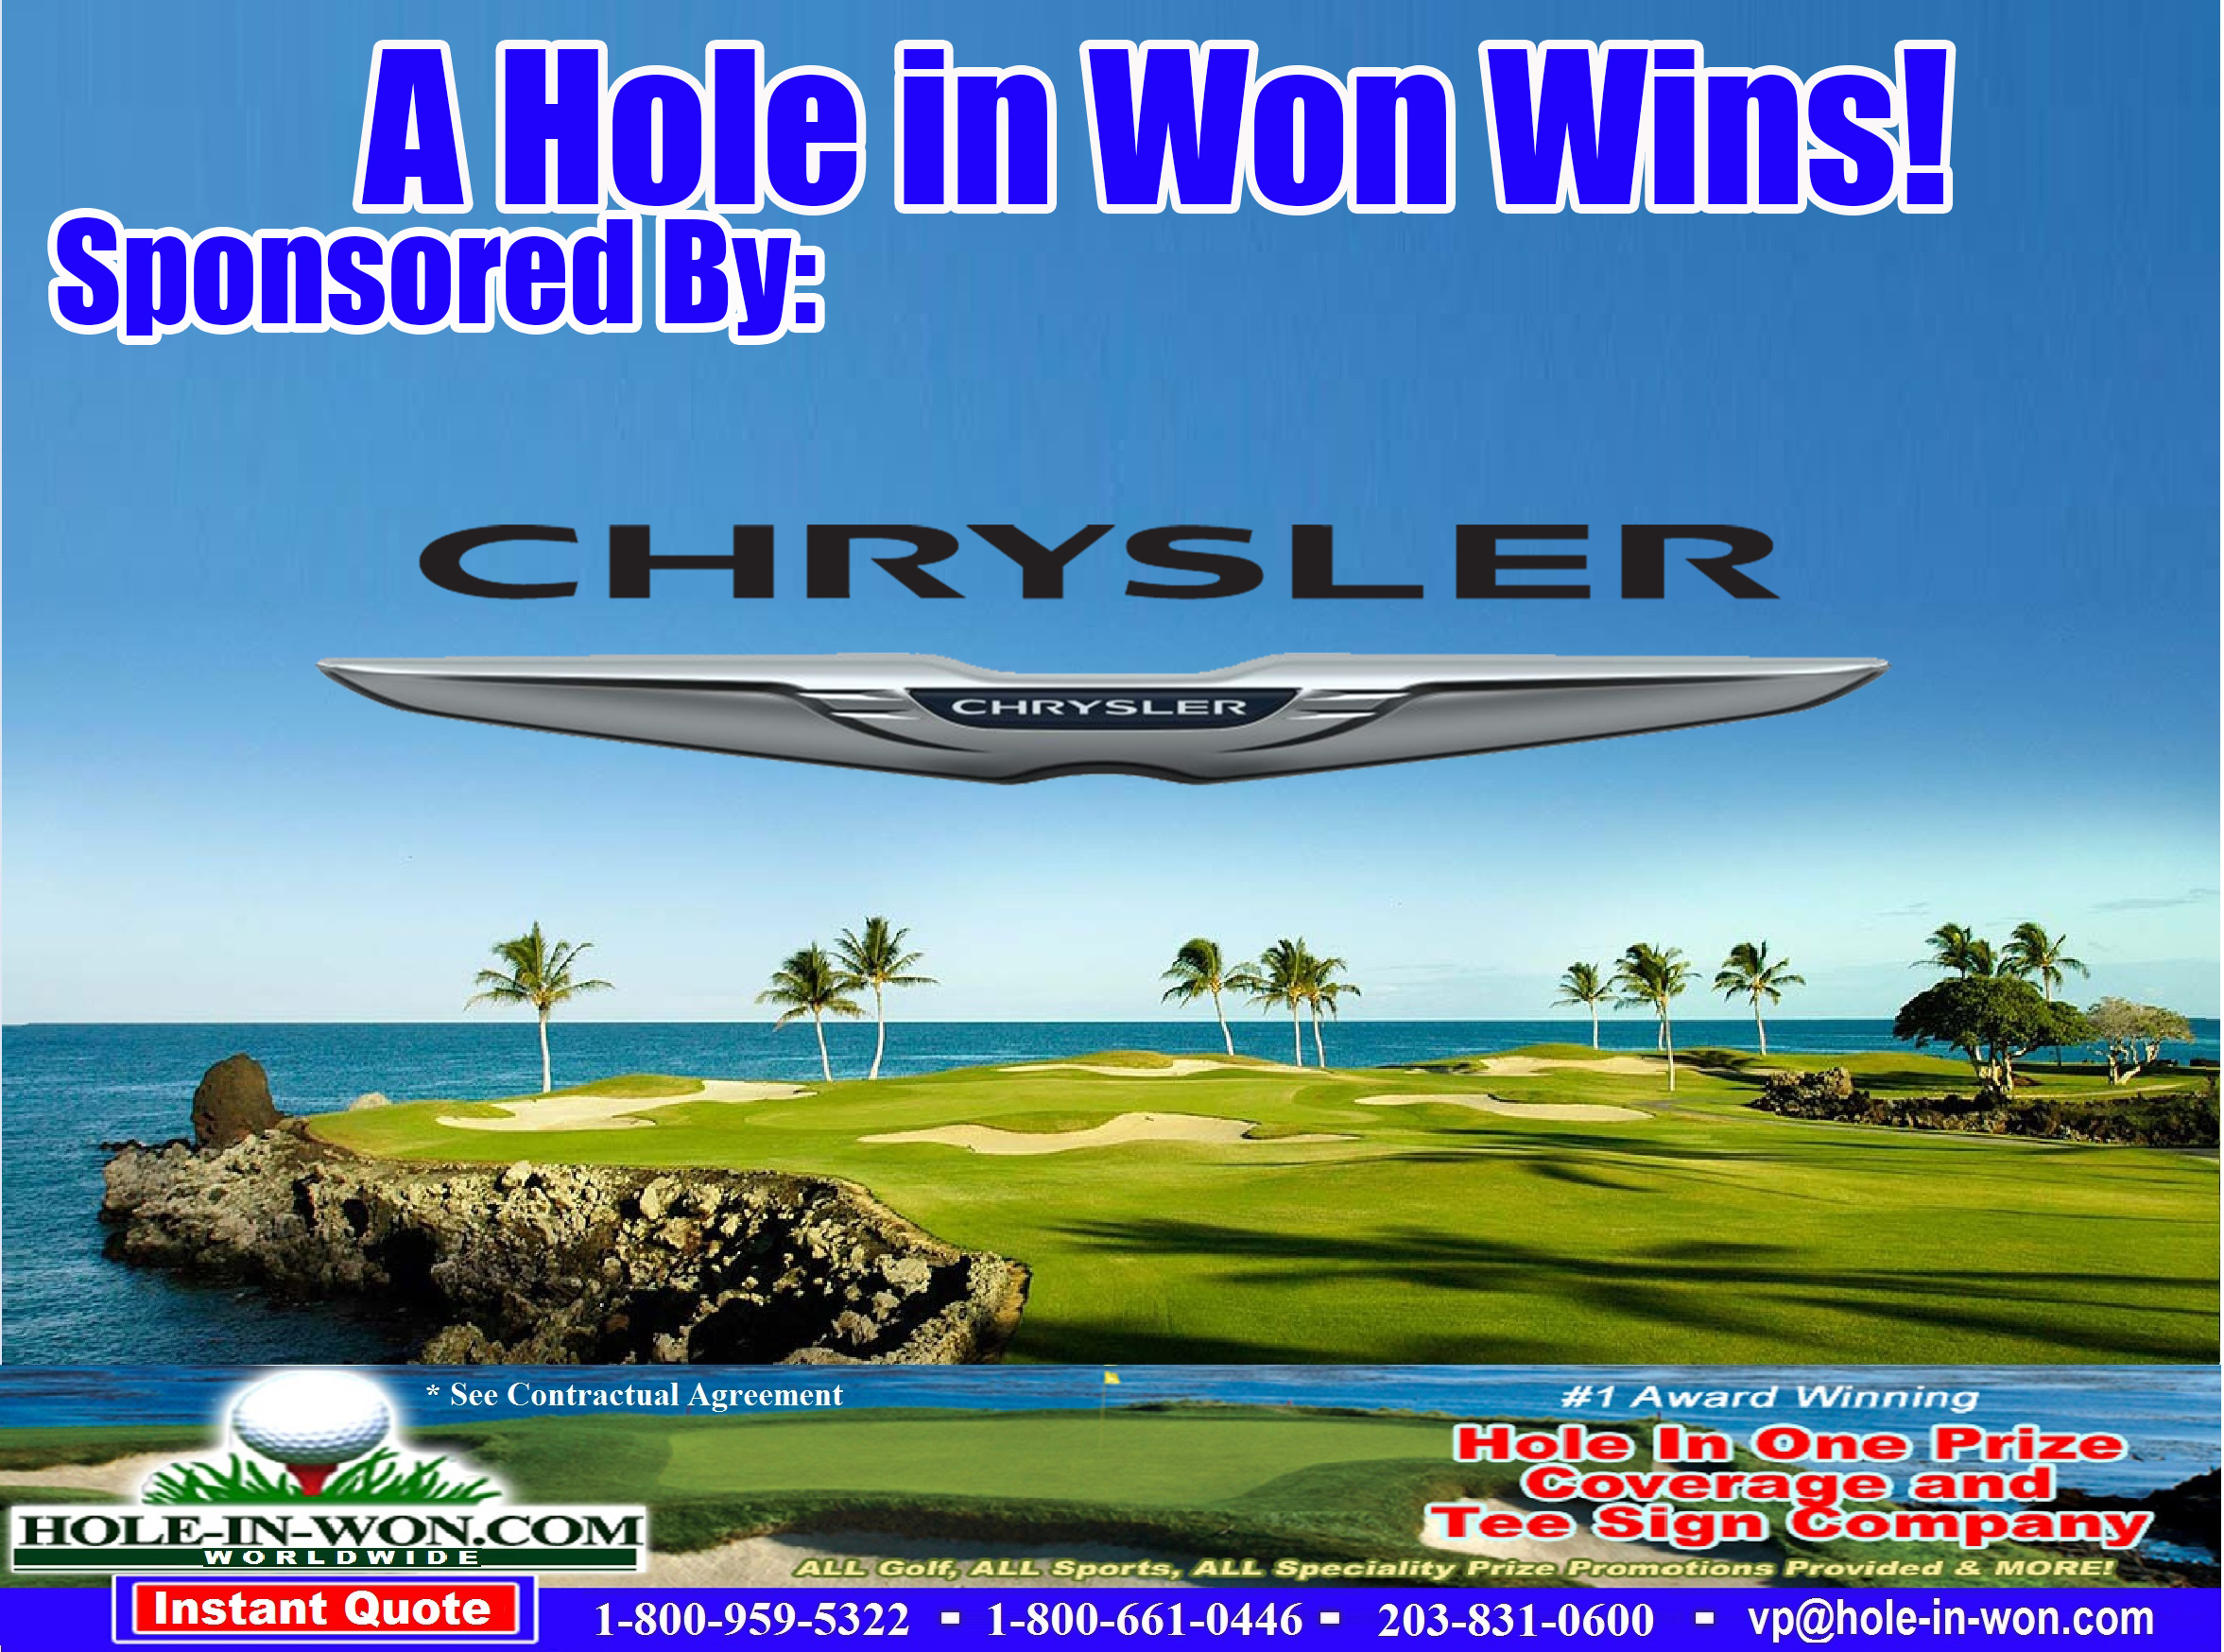 CHRYSLER Hole In One Images - Chrysler pap